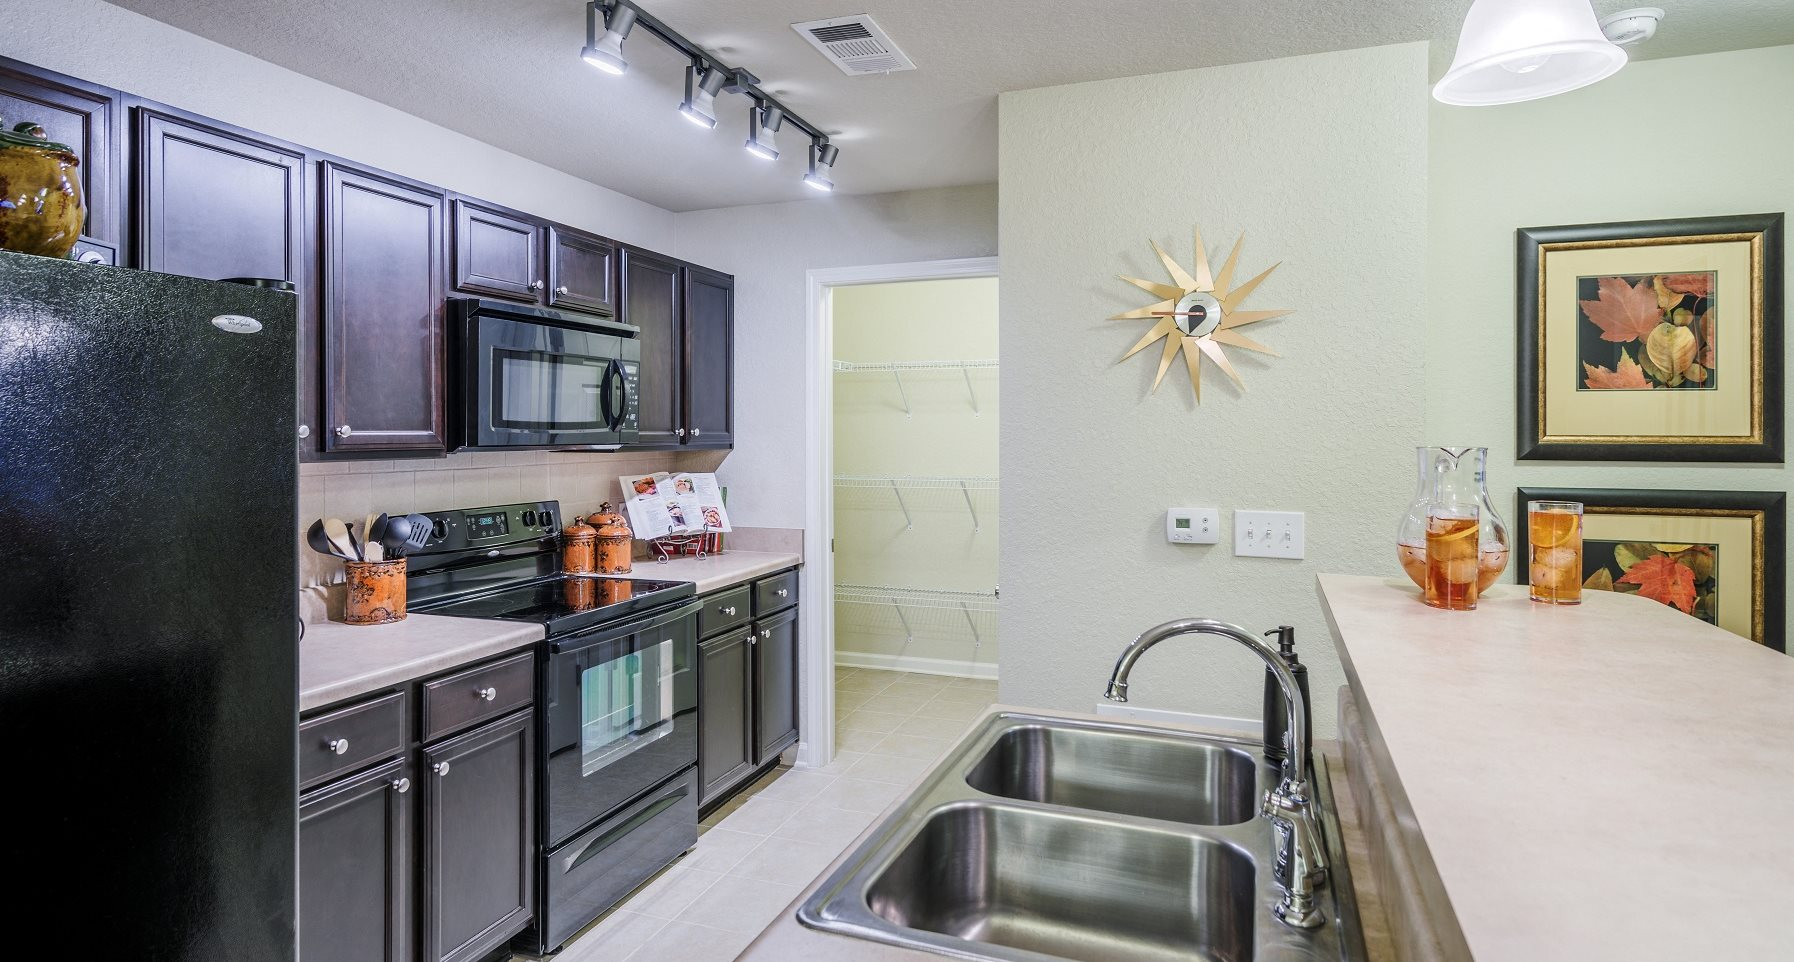 1 Bedroom Apartments In Knoxville - Search your favorite Image